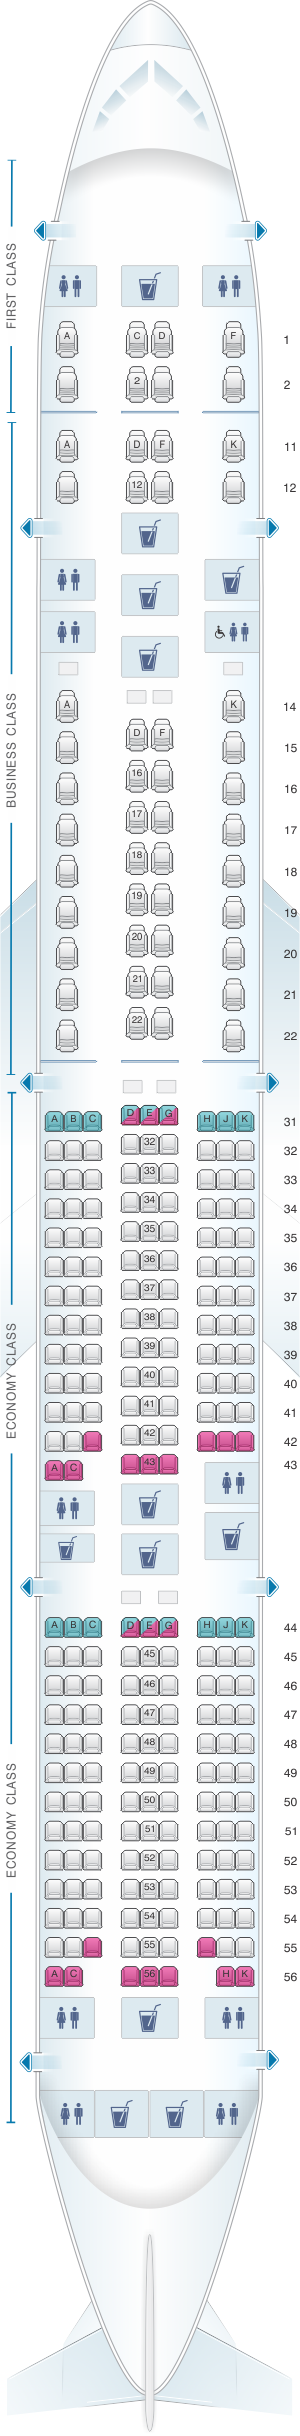 Seat map for Singapore Airlines Boeing B777 300ER three class